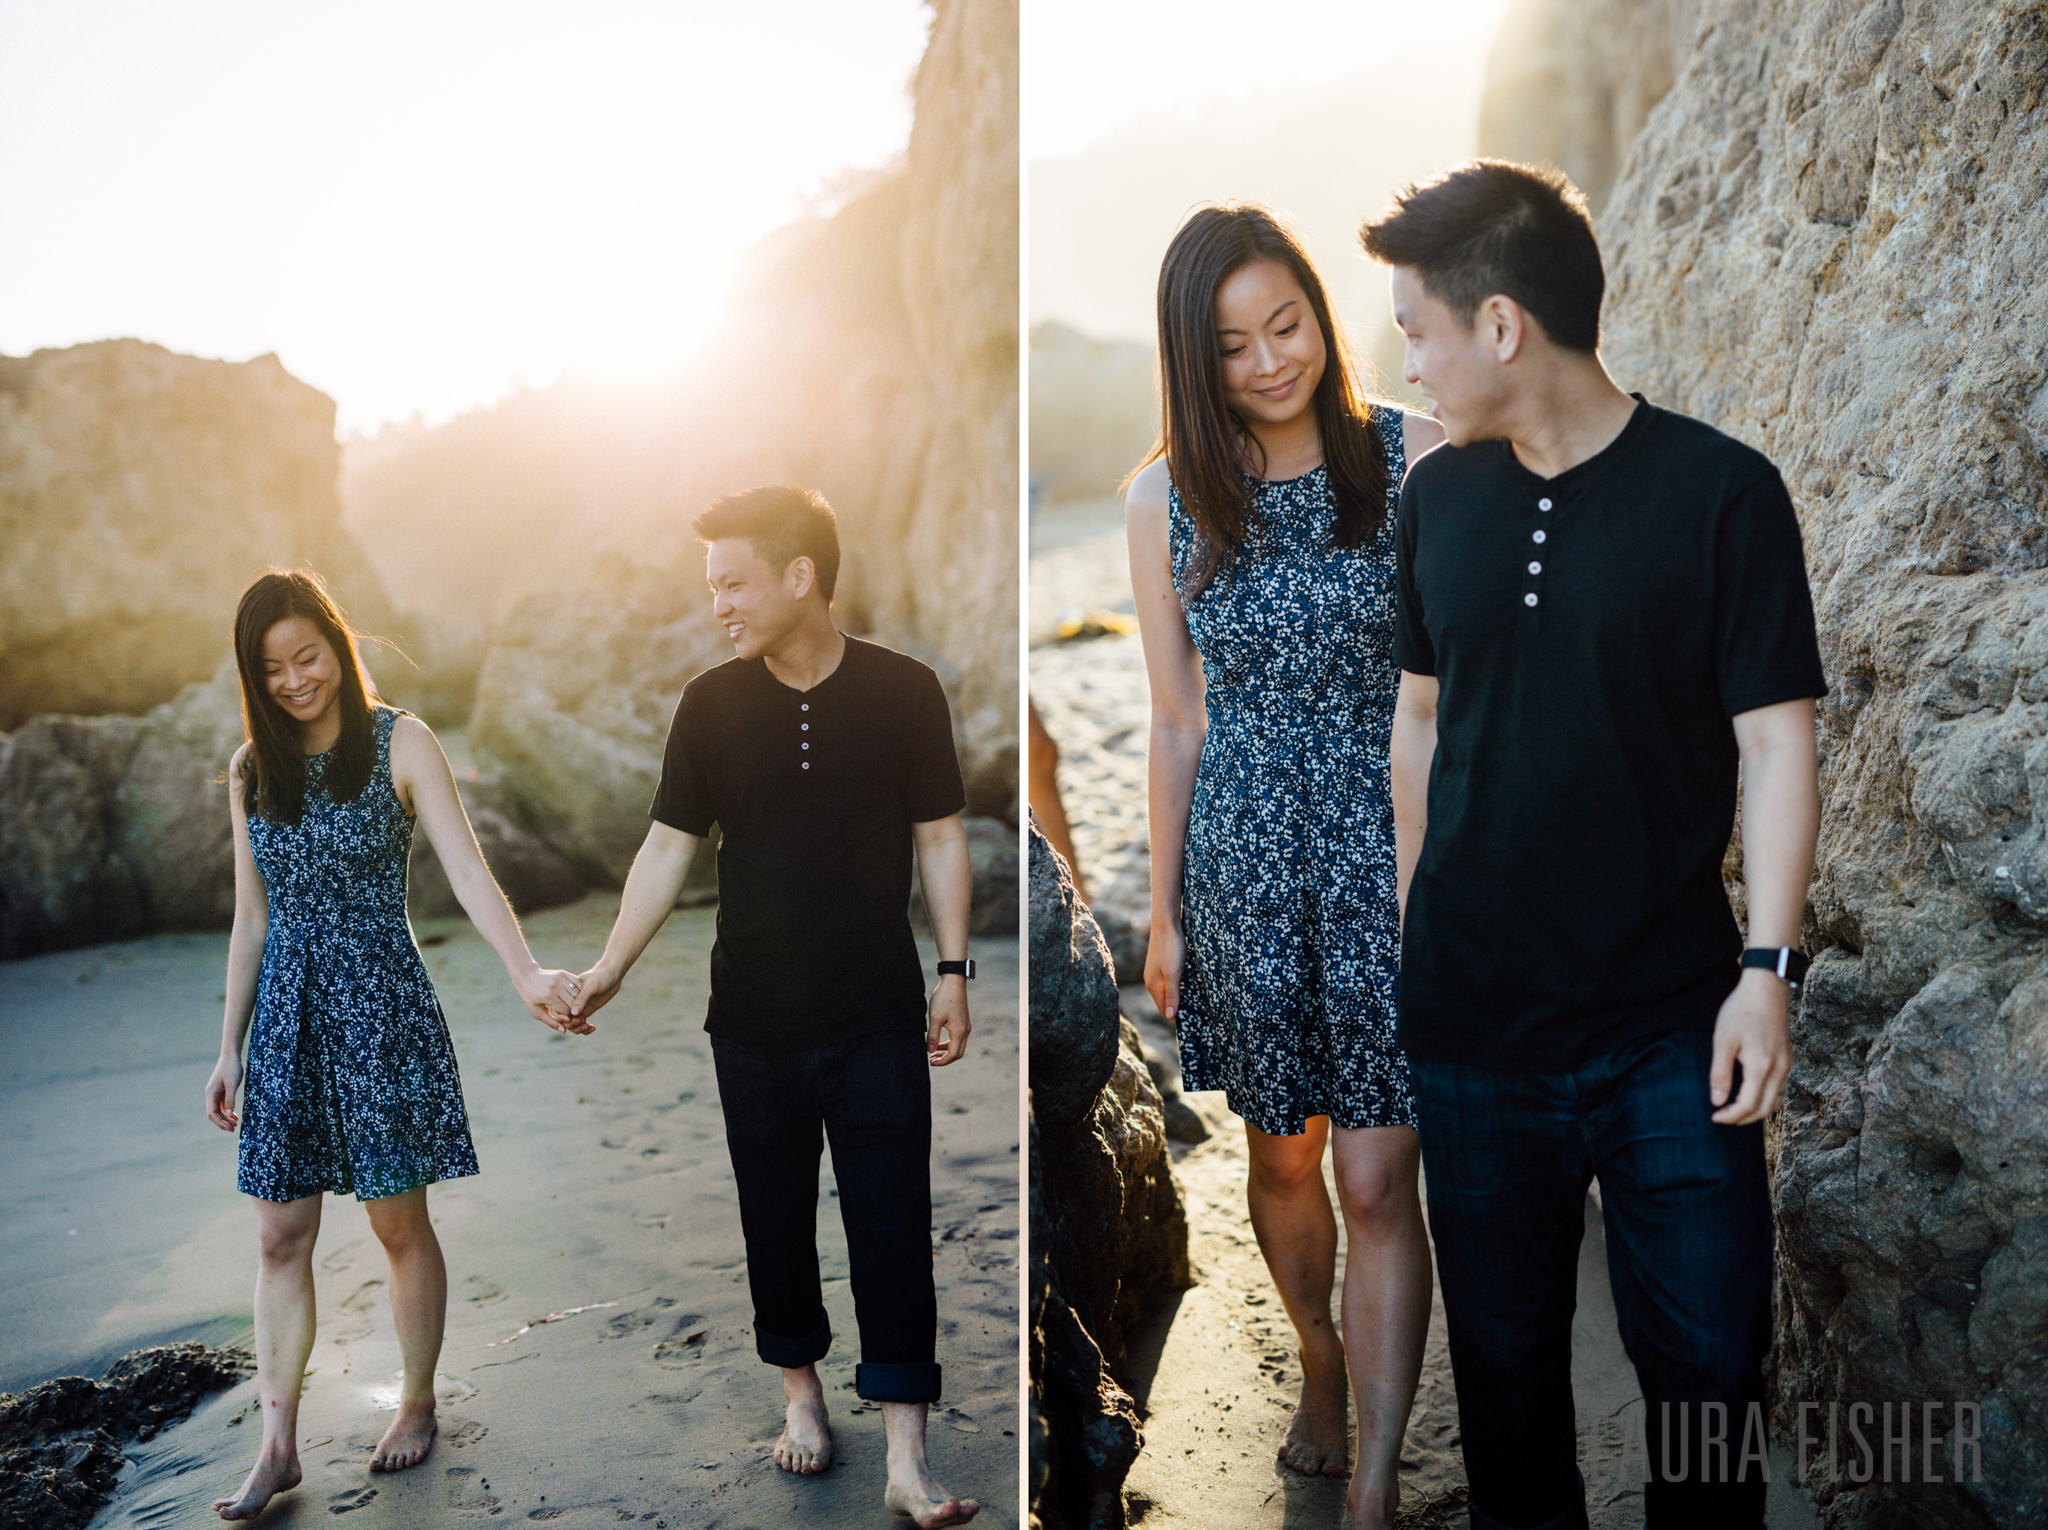 malibu-california-wedding-el-matador-beach-laura-fisher-photography-0047-2.jpg